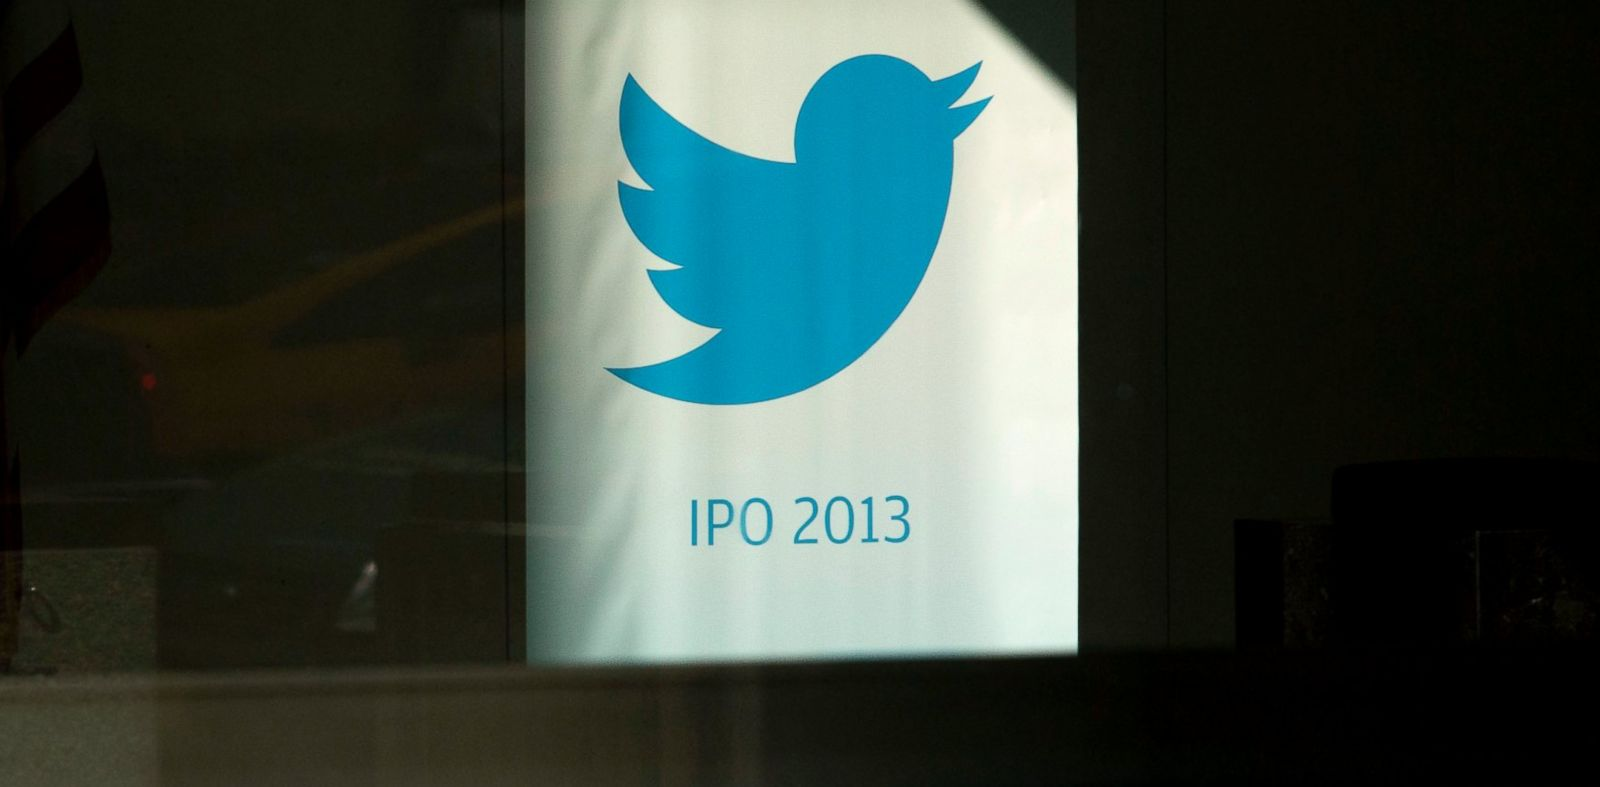 PHOTO: The Twitter Inc. logo displayed in the lobby of JPMorgan Chase & Co. headquarters in New York, Oct. 25, 2013. Twitter Inc. boosted its initial public offering (IPO) price to $23 to $25 a share.